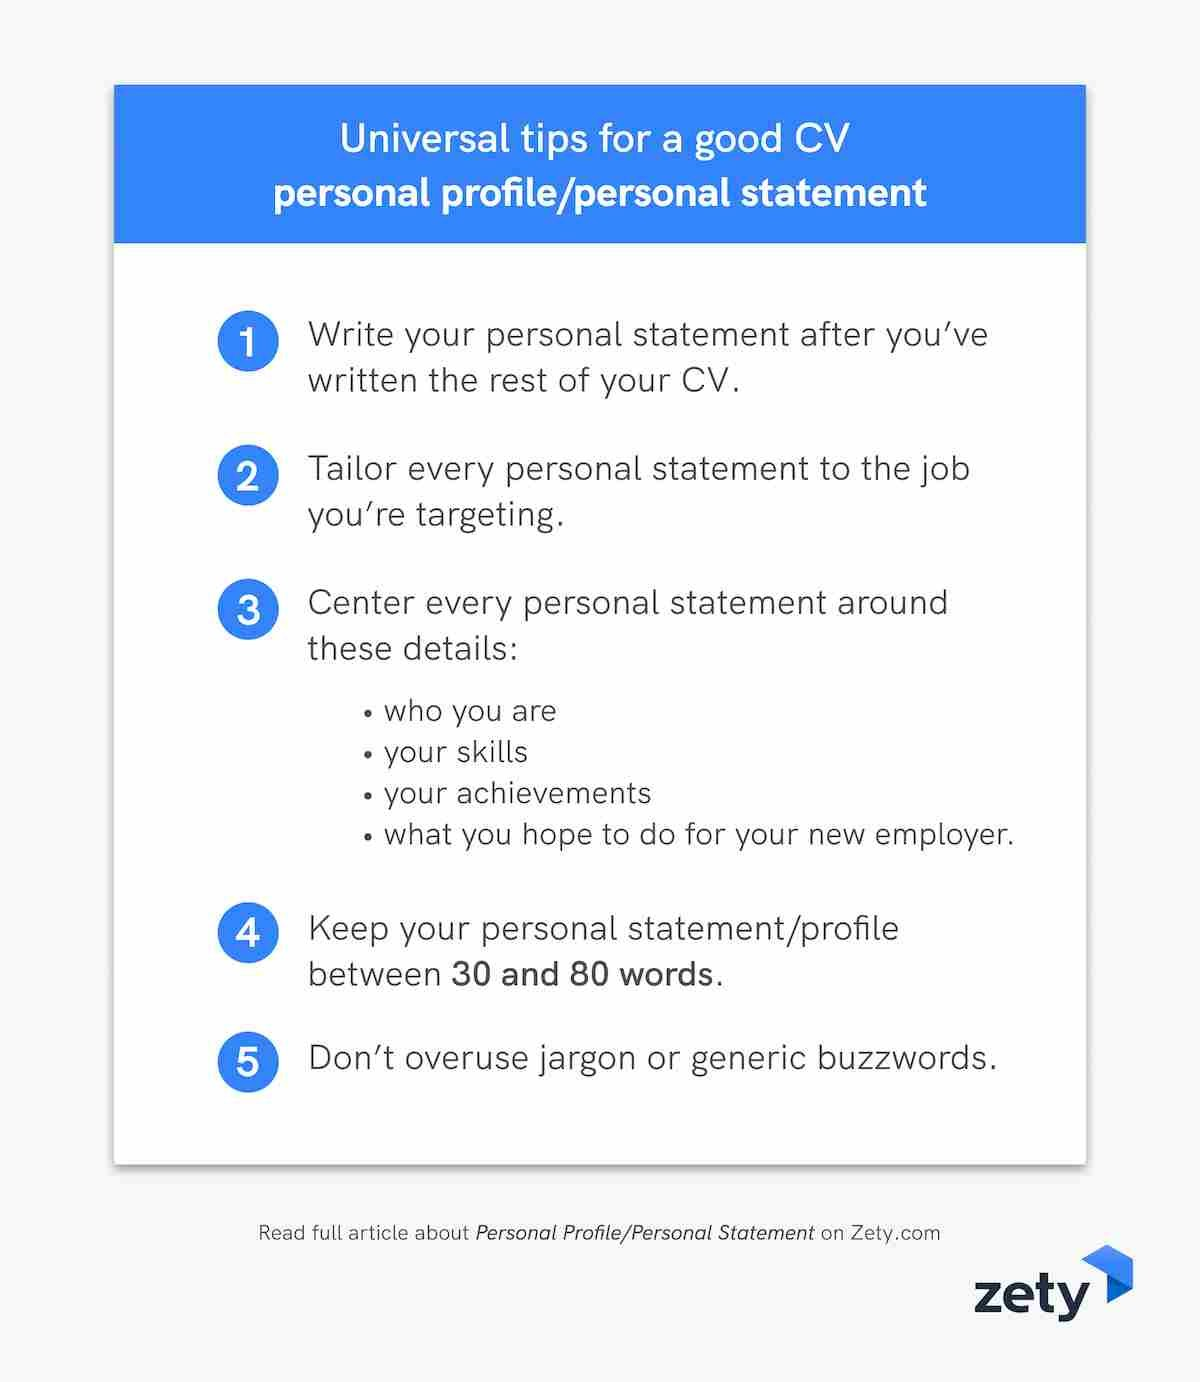 Universal tips for a good CV personal profile/personal statement